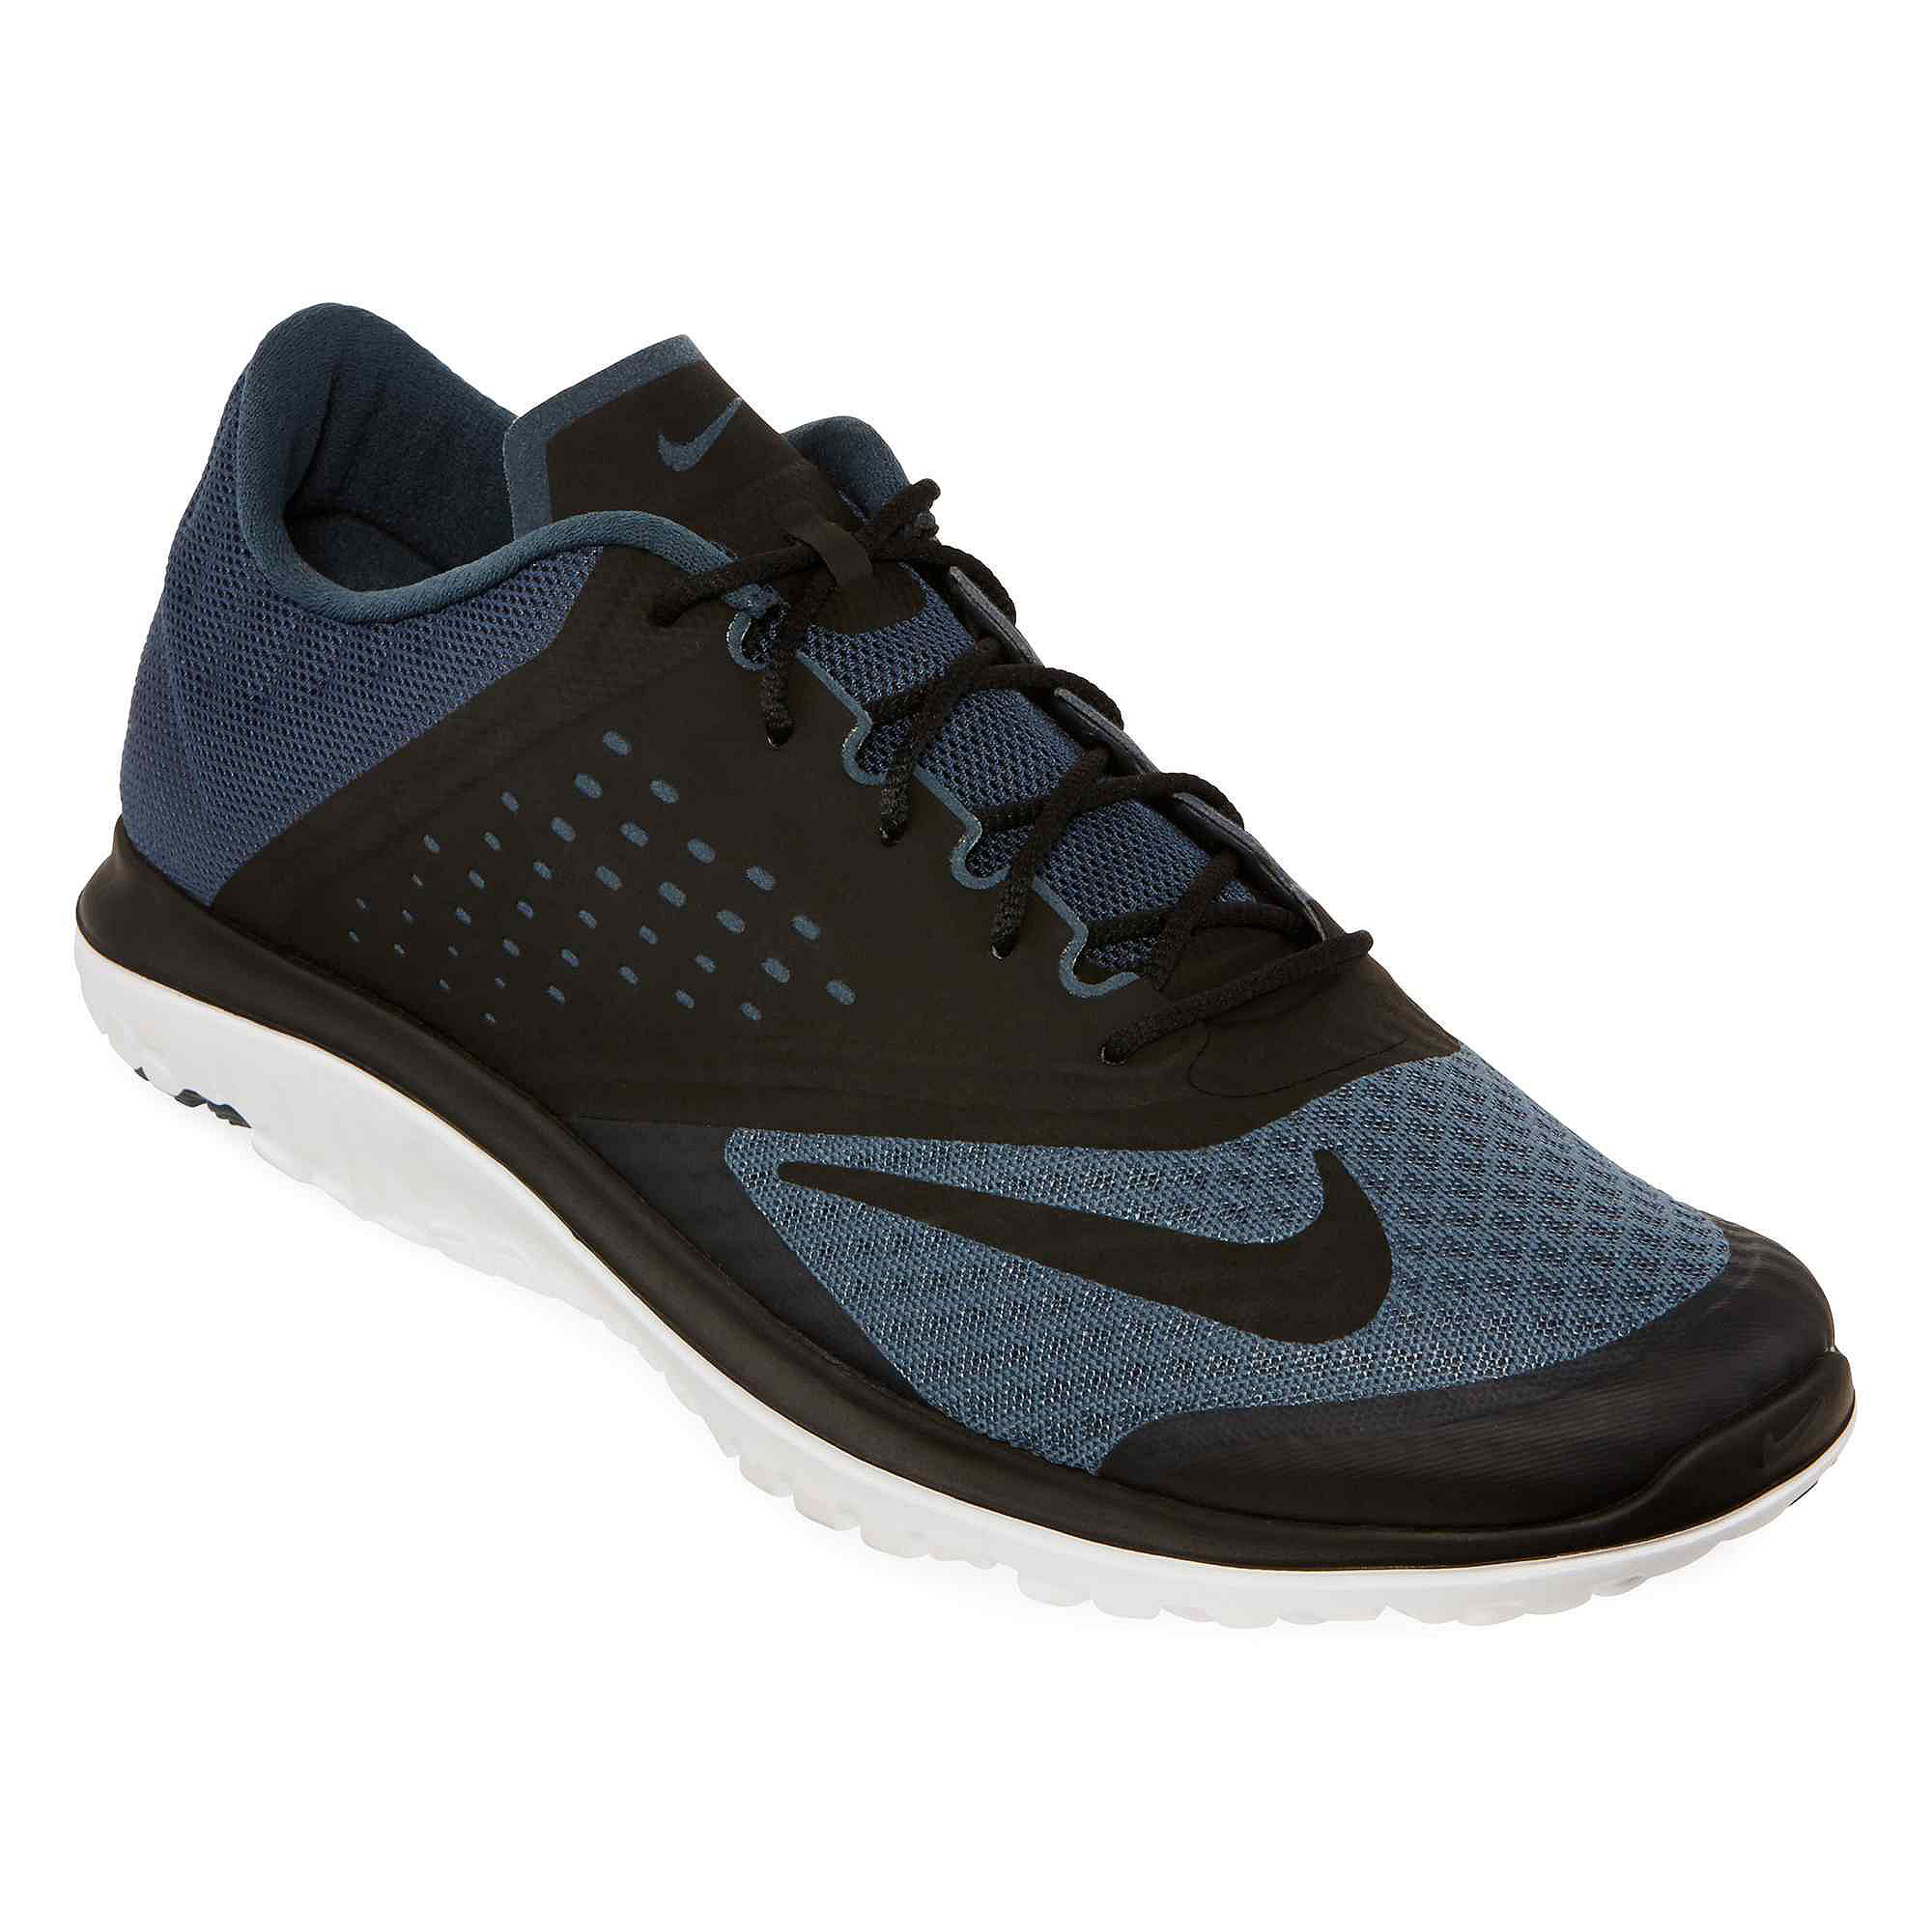 check out 41177 39349 UPC 886061941892 - Nike FS Lite 2 Mens Running Shoes ...